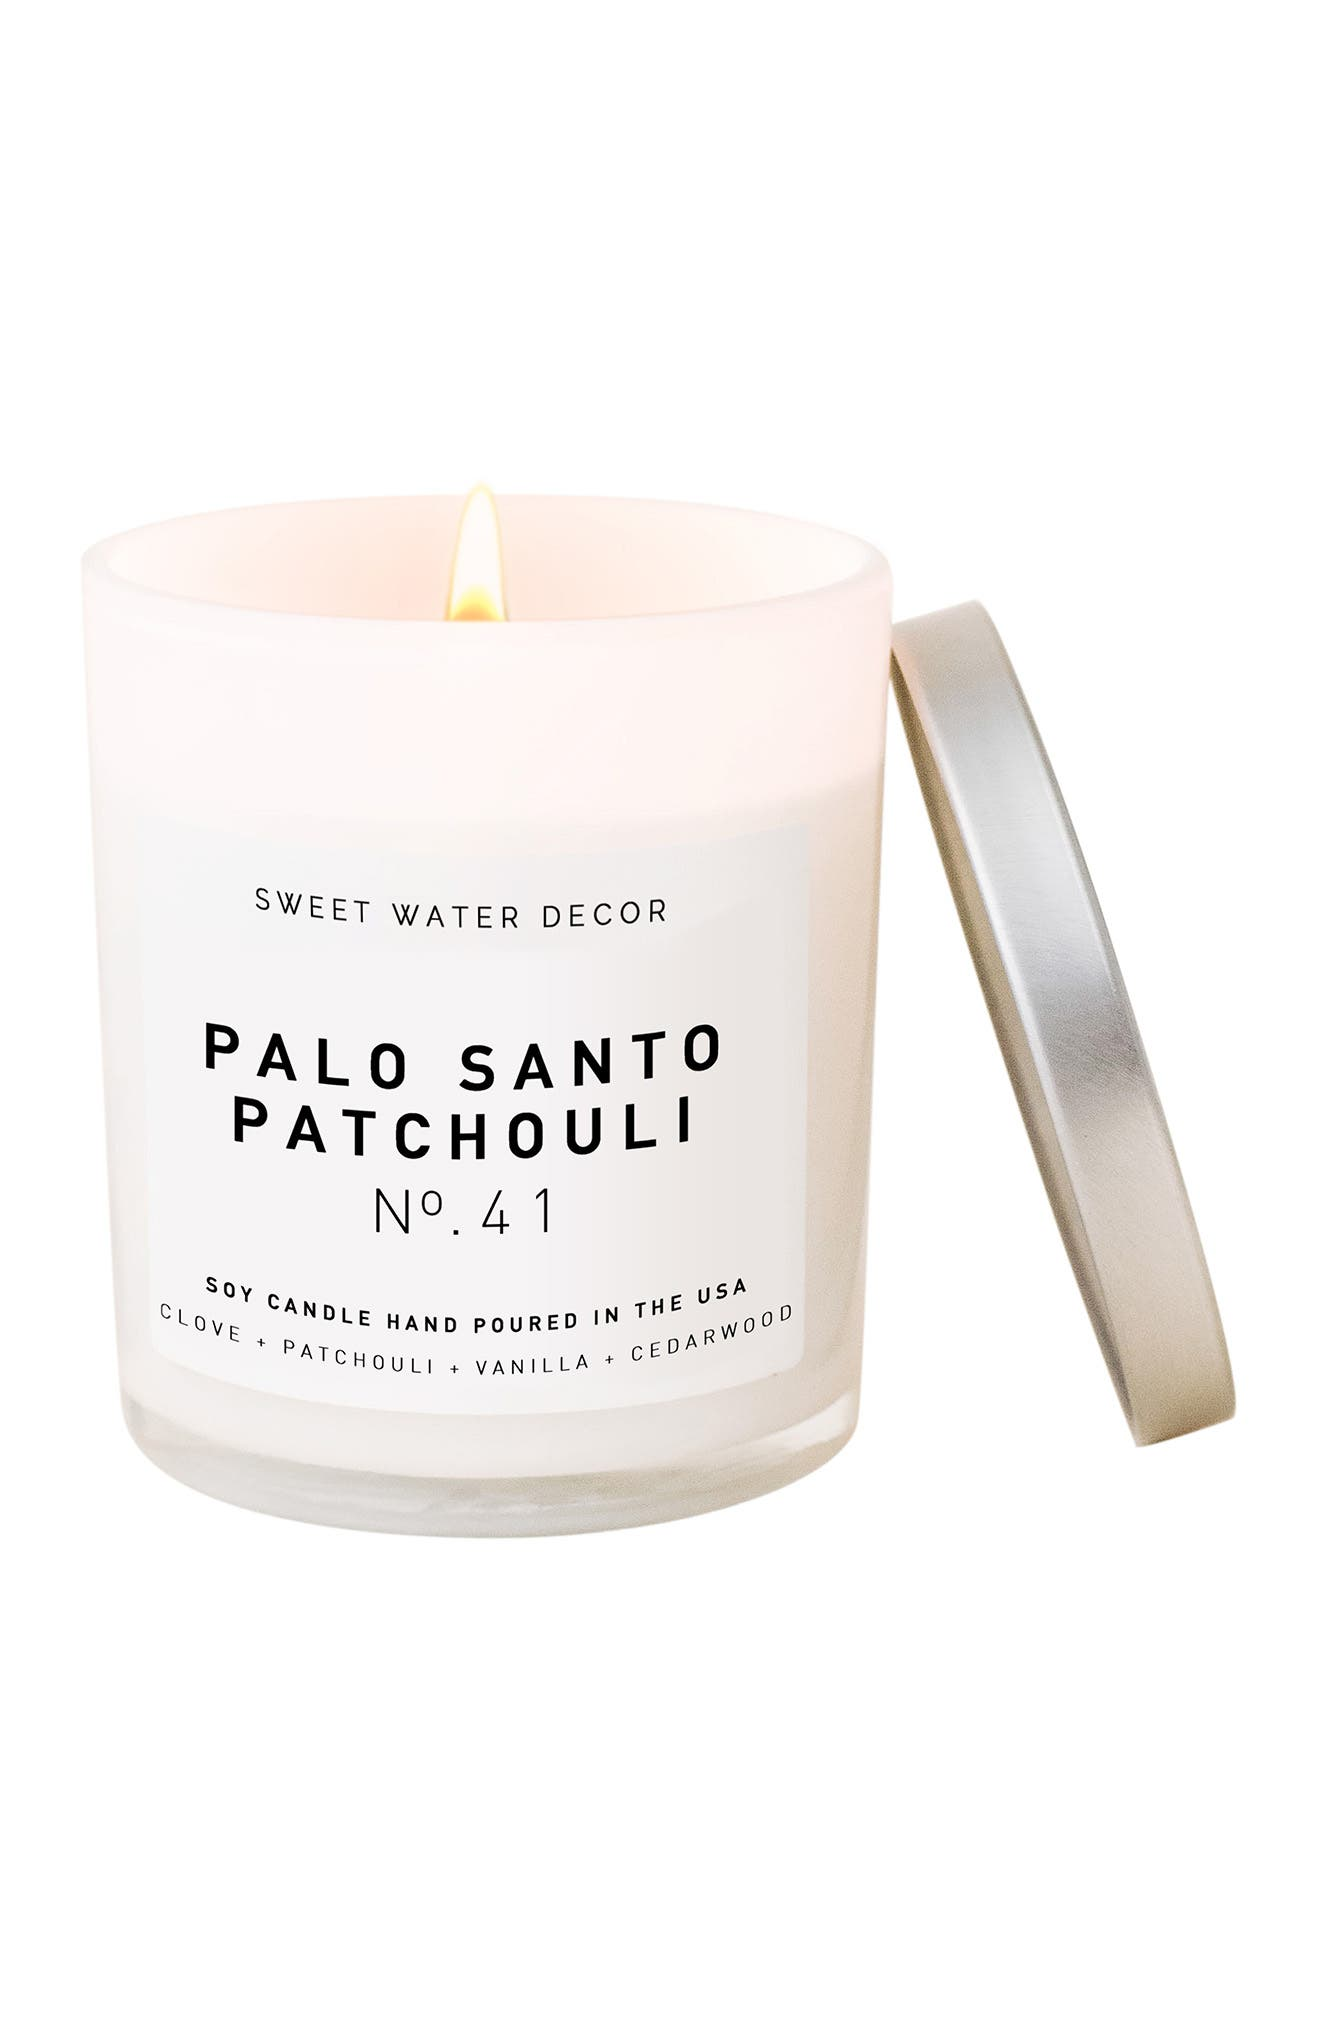 Image of SWEET WATER DECOR Palo Santo Pachouli 11 oz. Soy Jar Candle - Set of 2